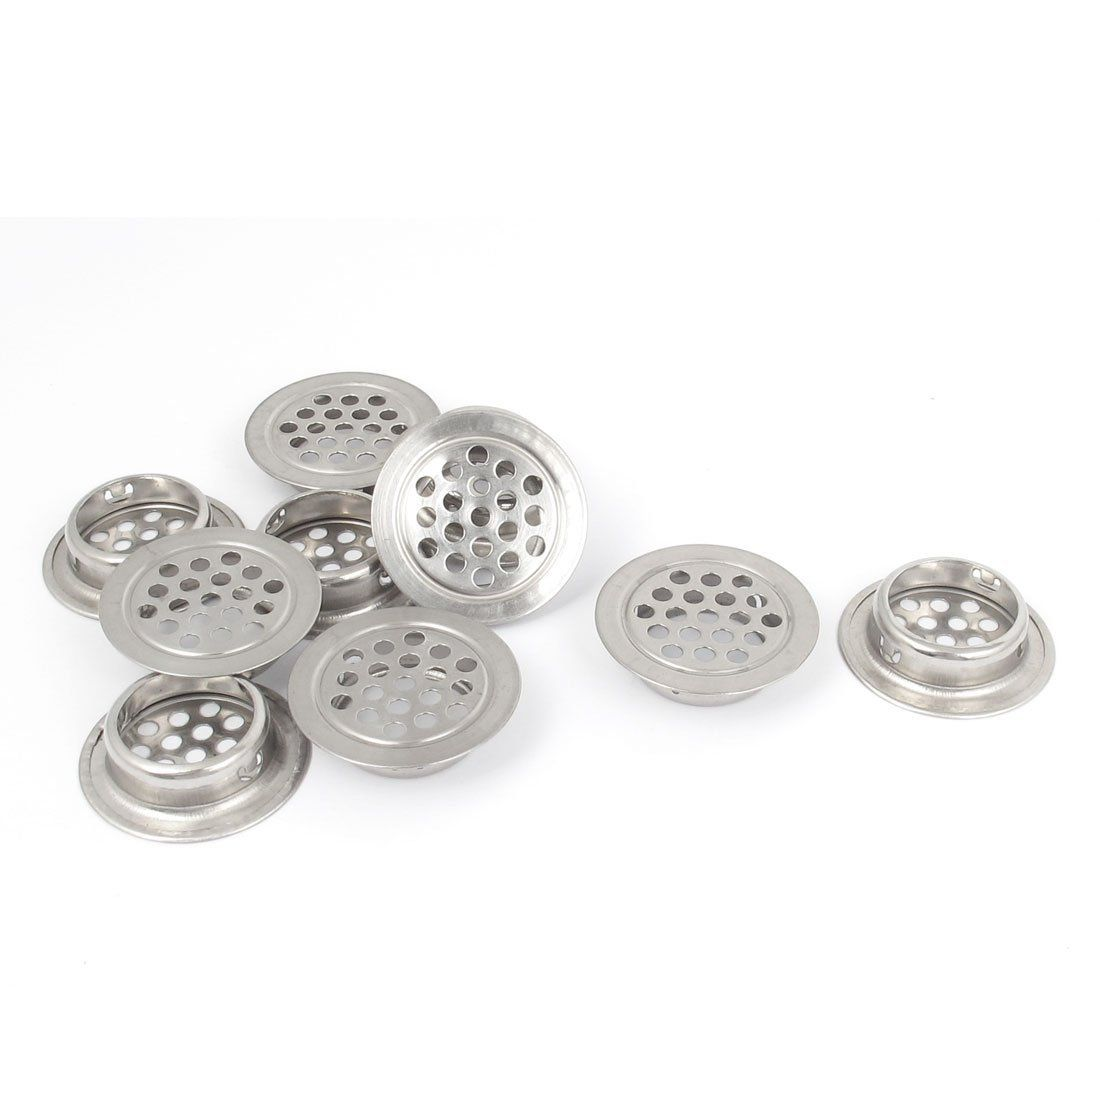 Perforated Mesh Air Vents Ventilation Louvers 25mm Bottom Dia 10pcs * Check out this great product.